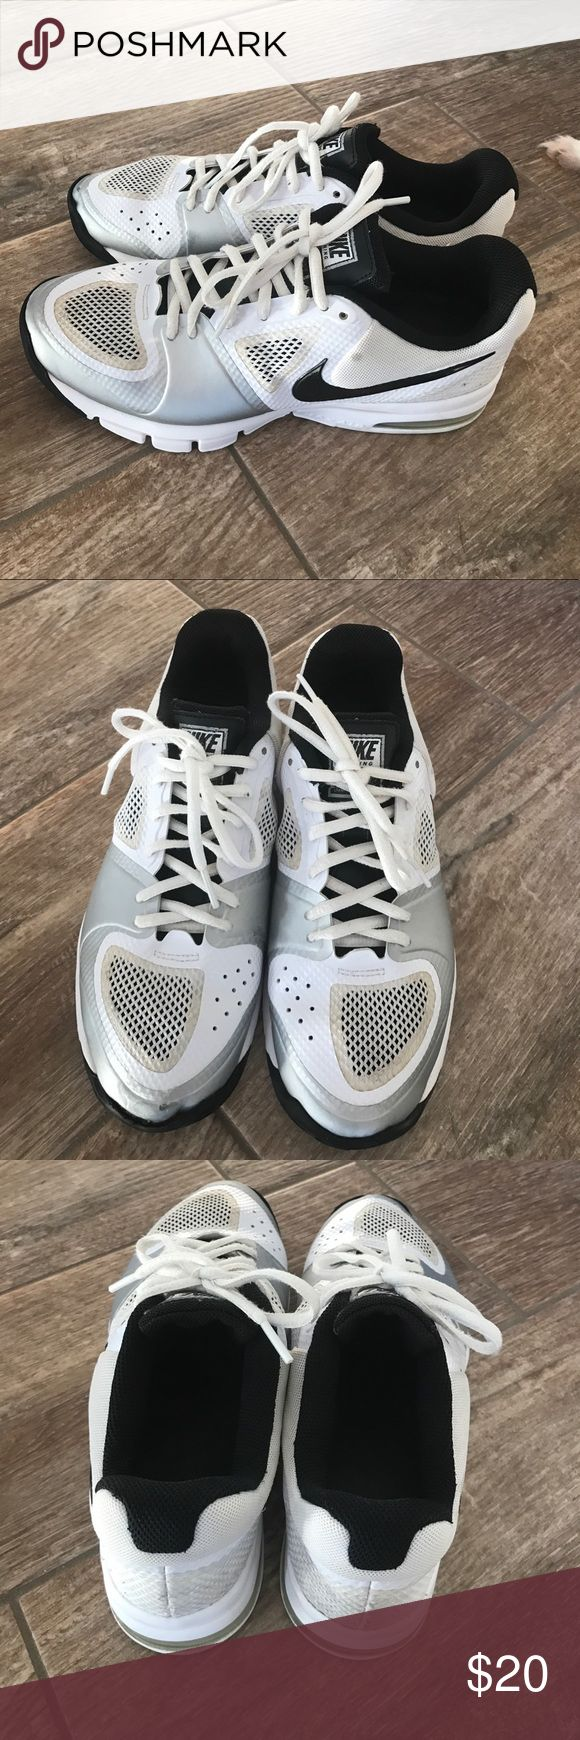 Women's Hyperfly Nike Volleyball Shoes Size 8.5 Very good shape. Nike Shoes Athletic Shoes